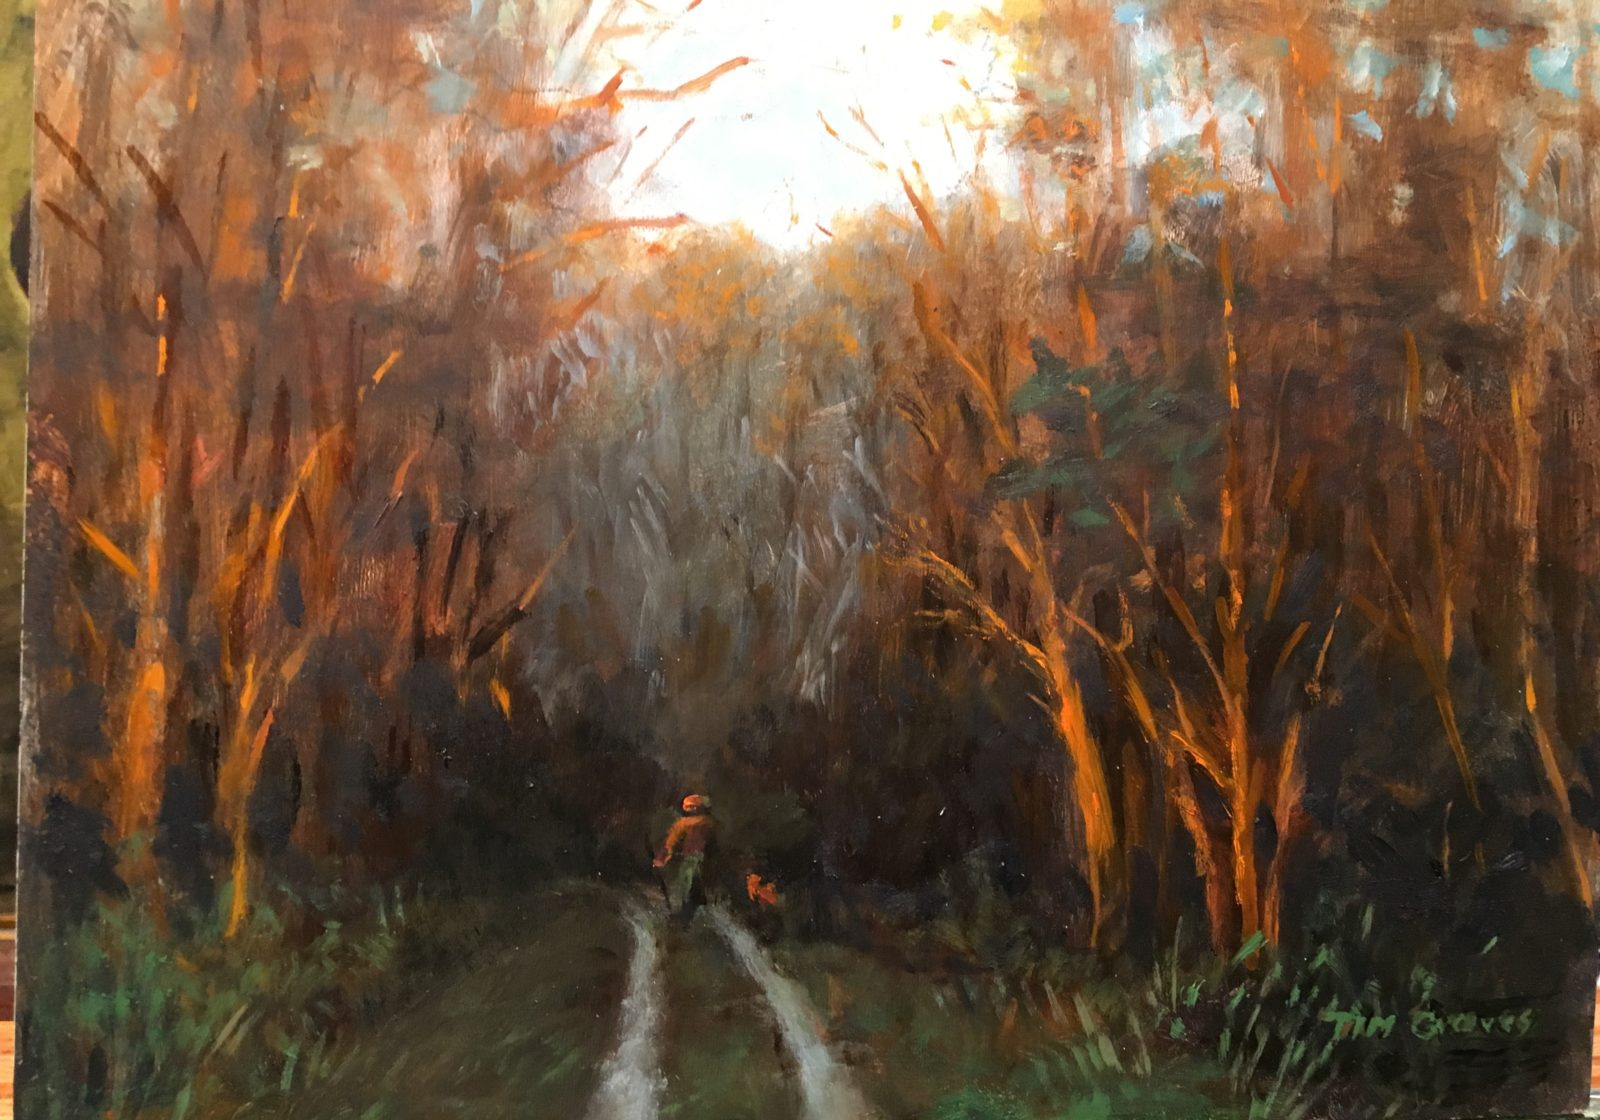 Tim Greaves, Sunset Ricefield